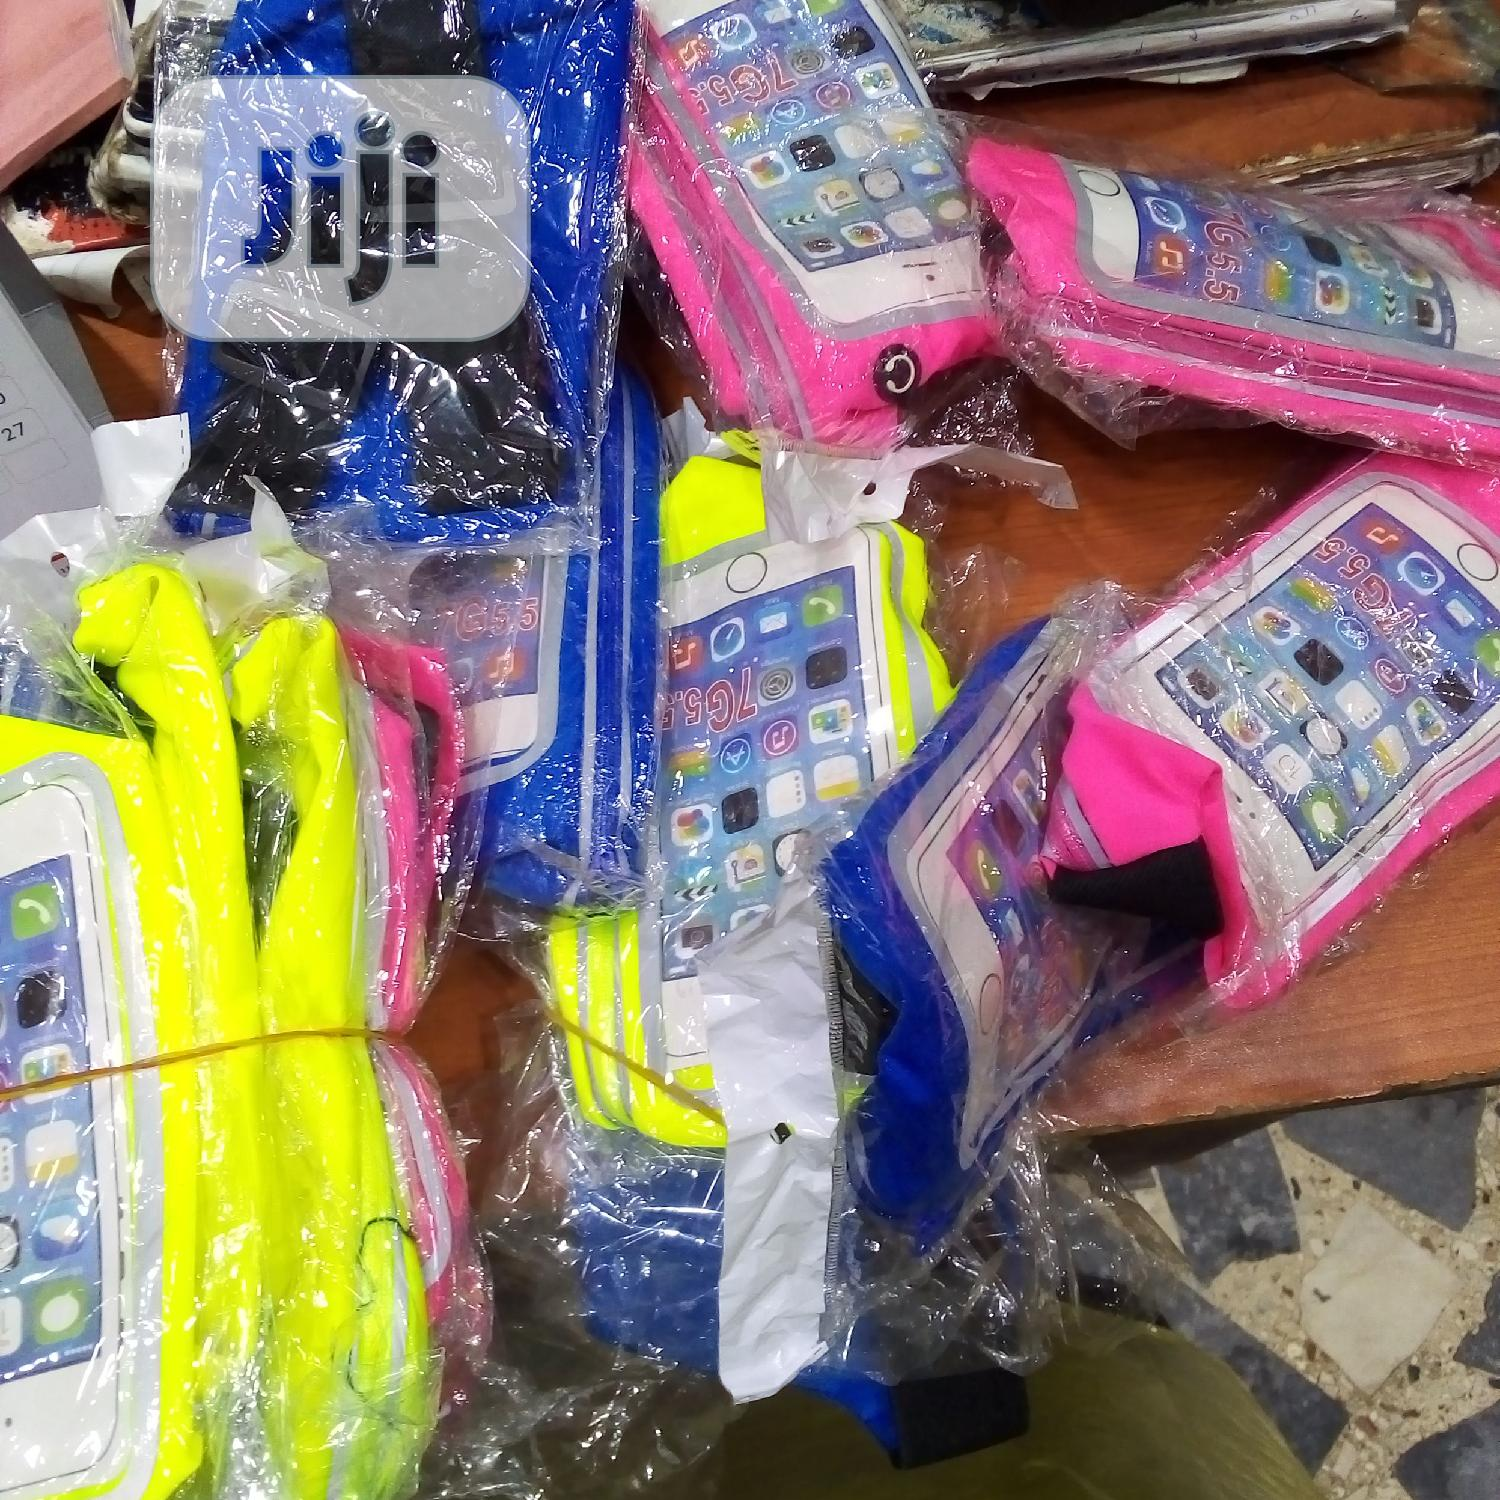 Archive: Waist Bag For Phone